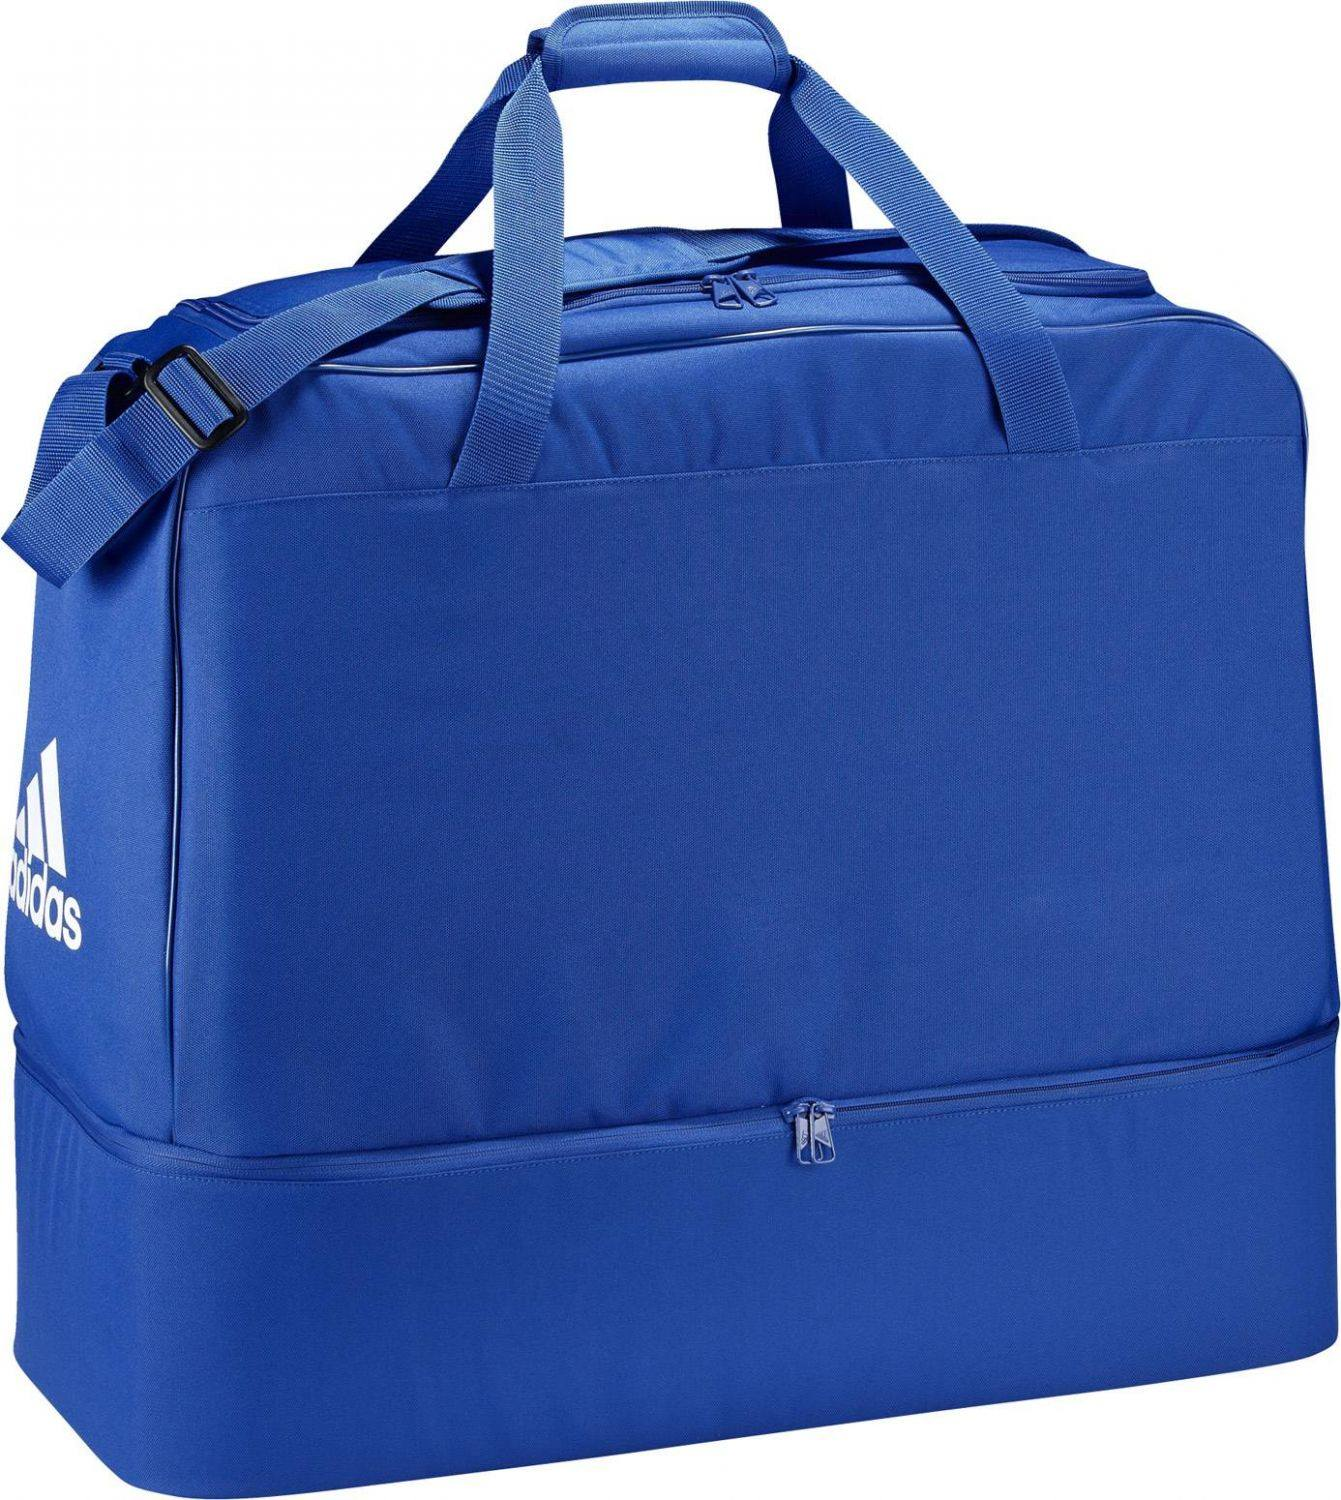 adidas Teambag With Bottom Compartment (Farbe: bold blue/white)